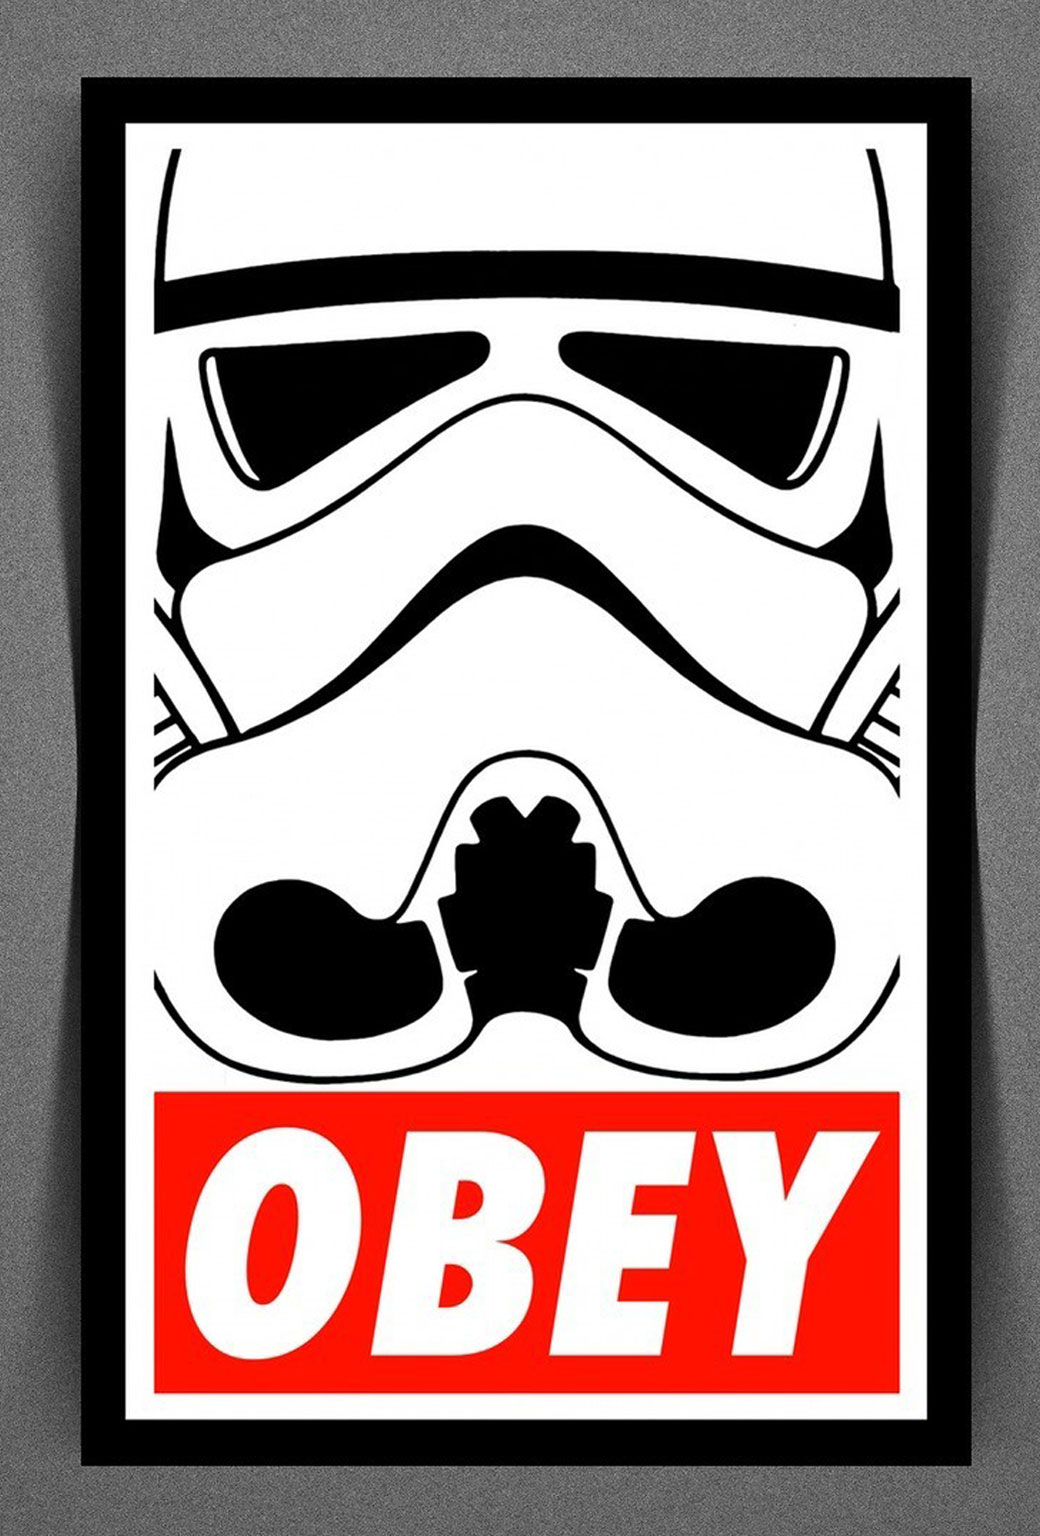 Obey Iphone Wallpaper Obey wallpaper 1040x1536